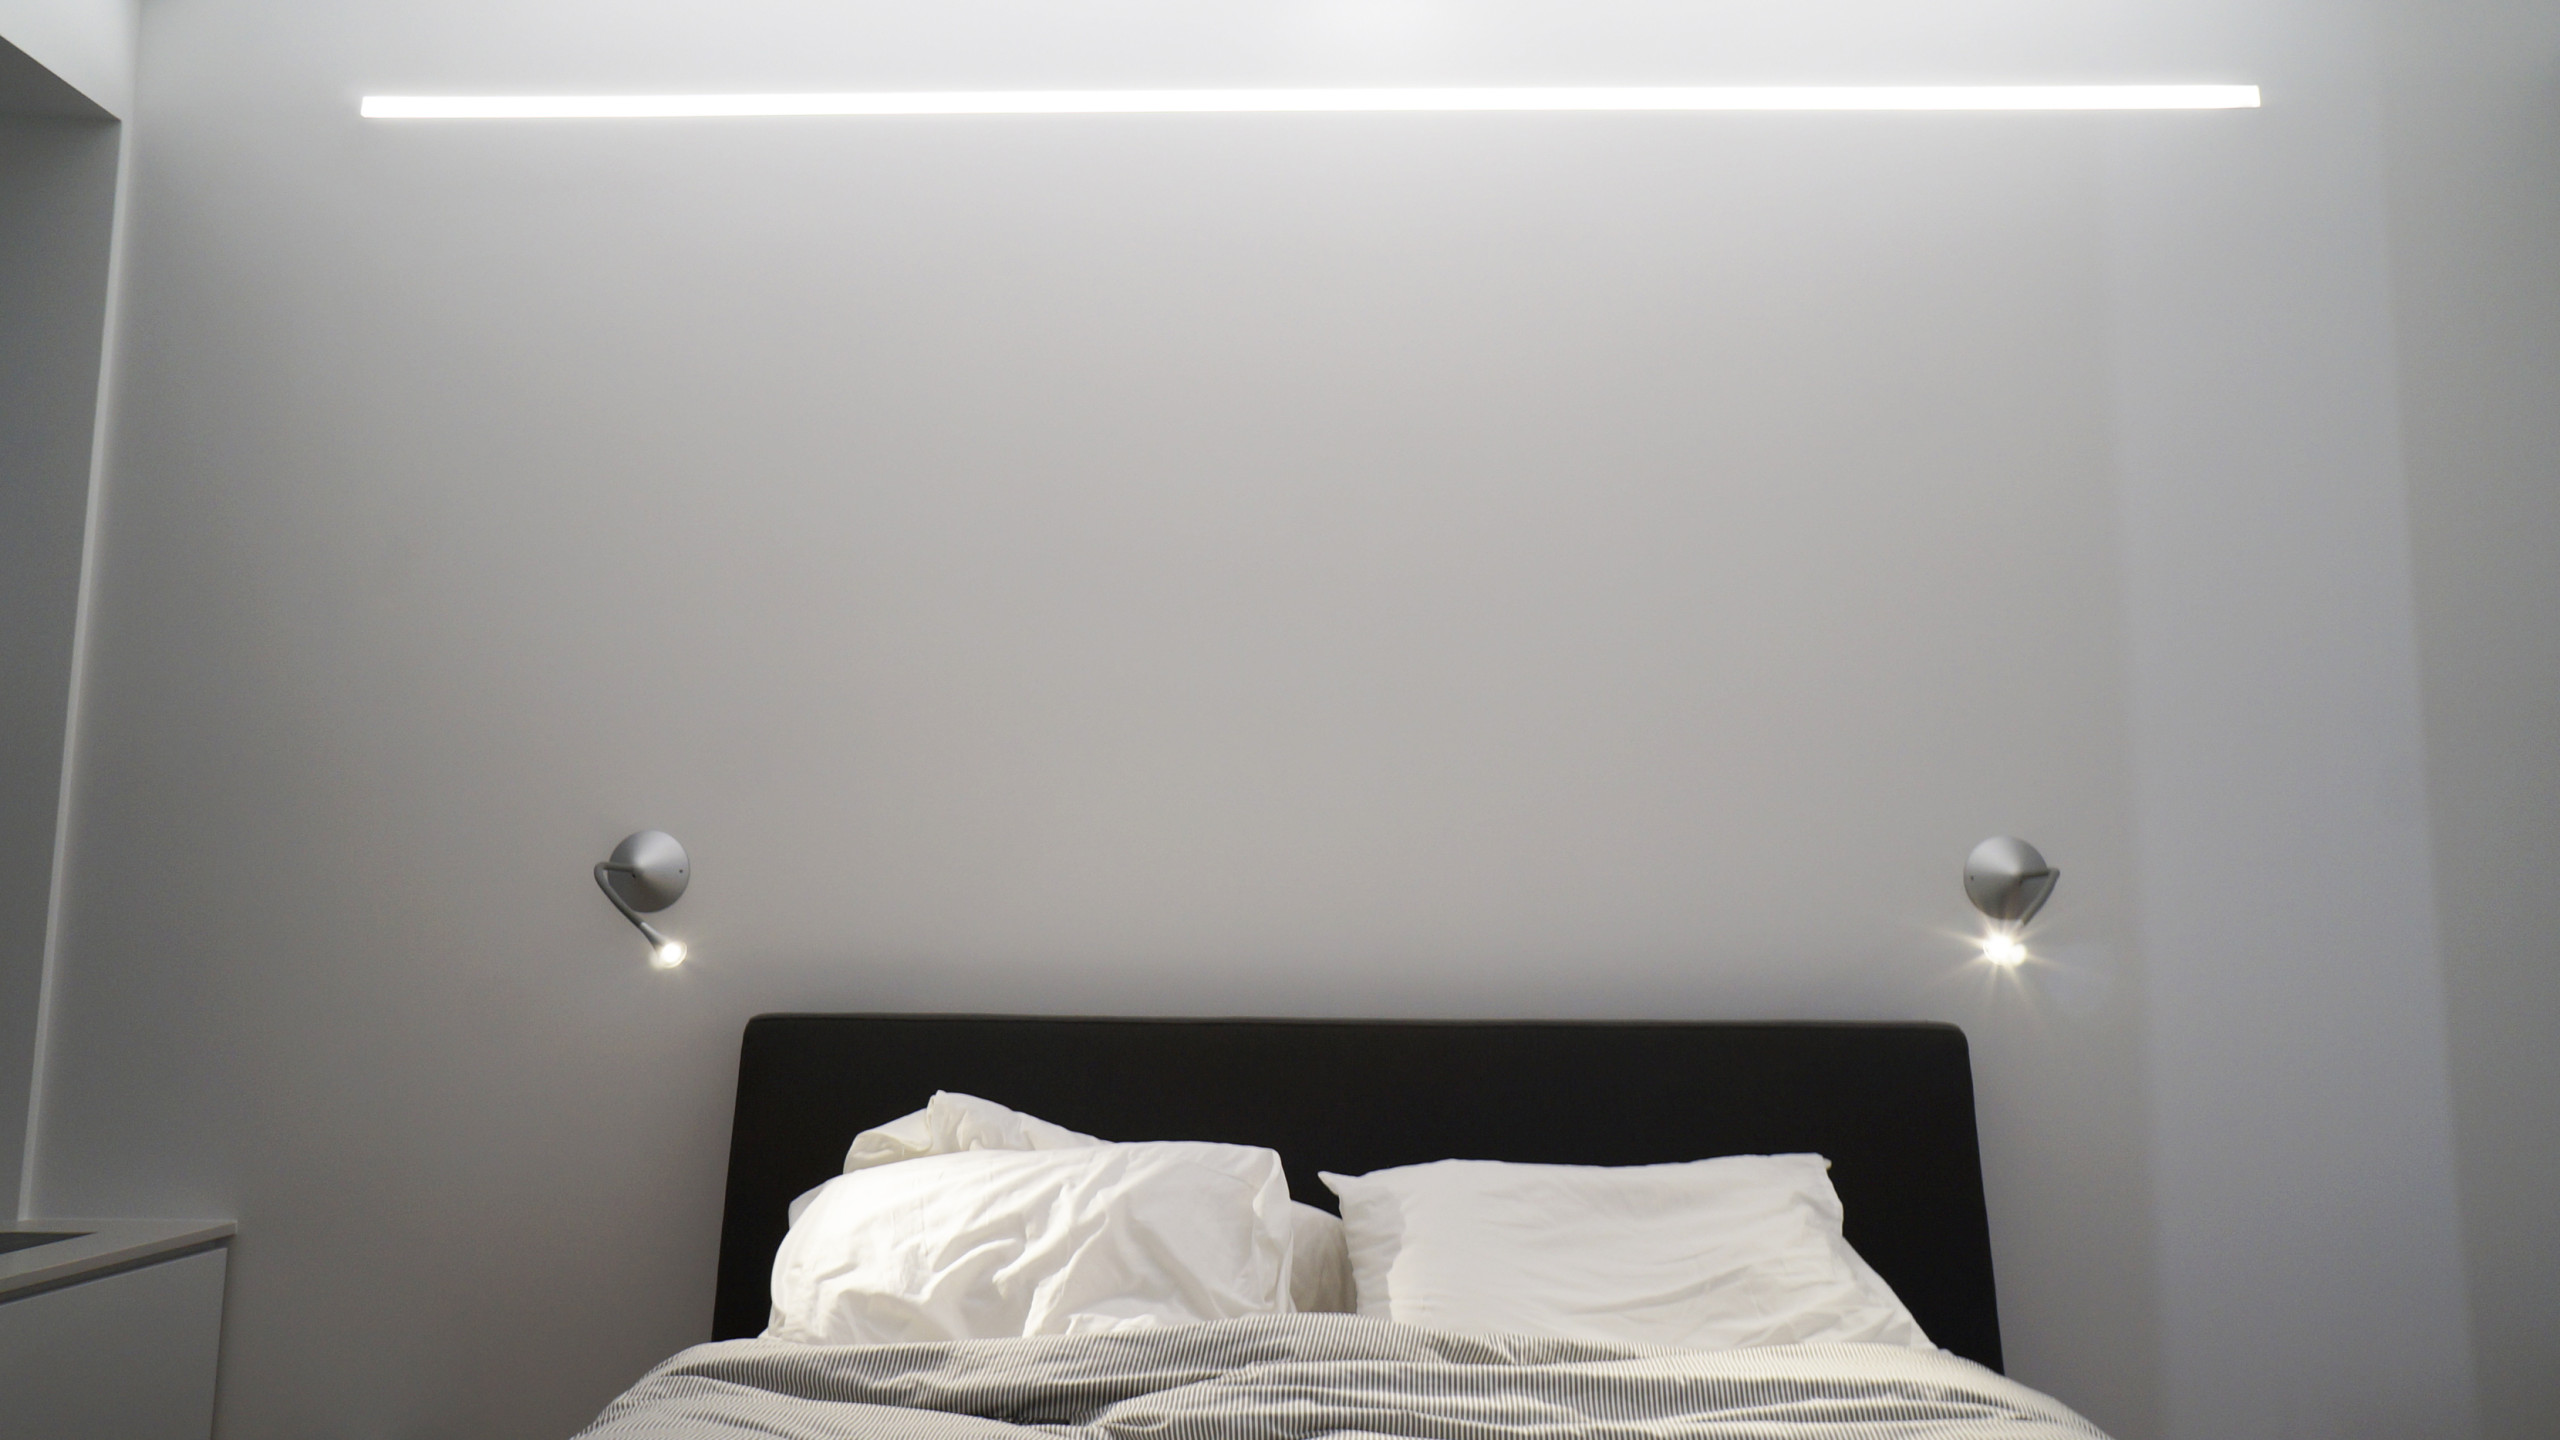 DETAIL  -  Bedroom and Linear Built in Ambient Light